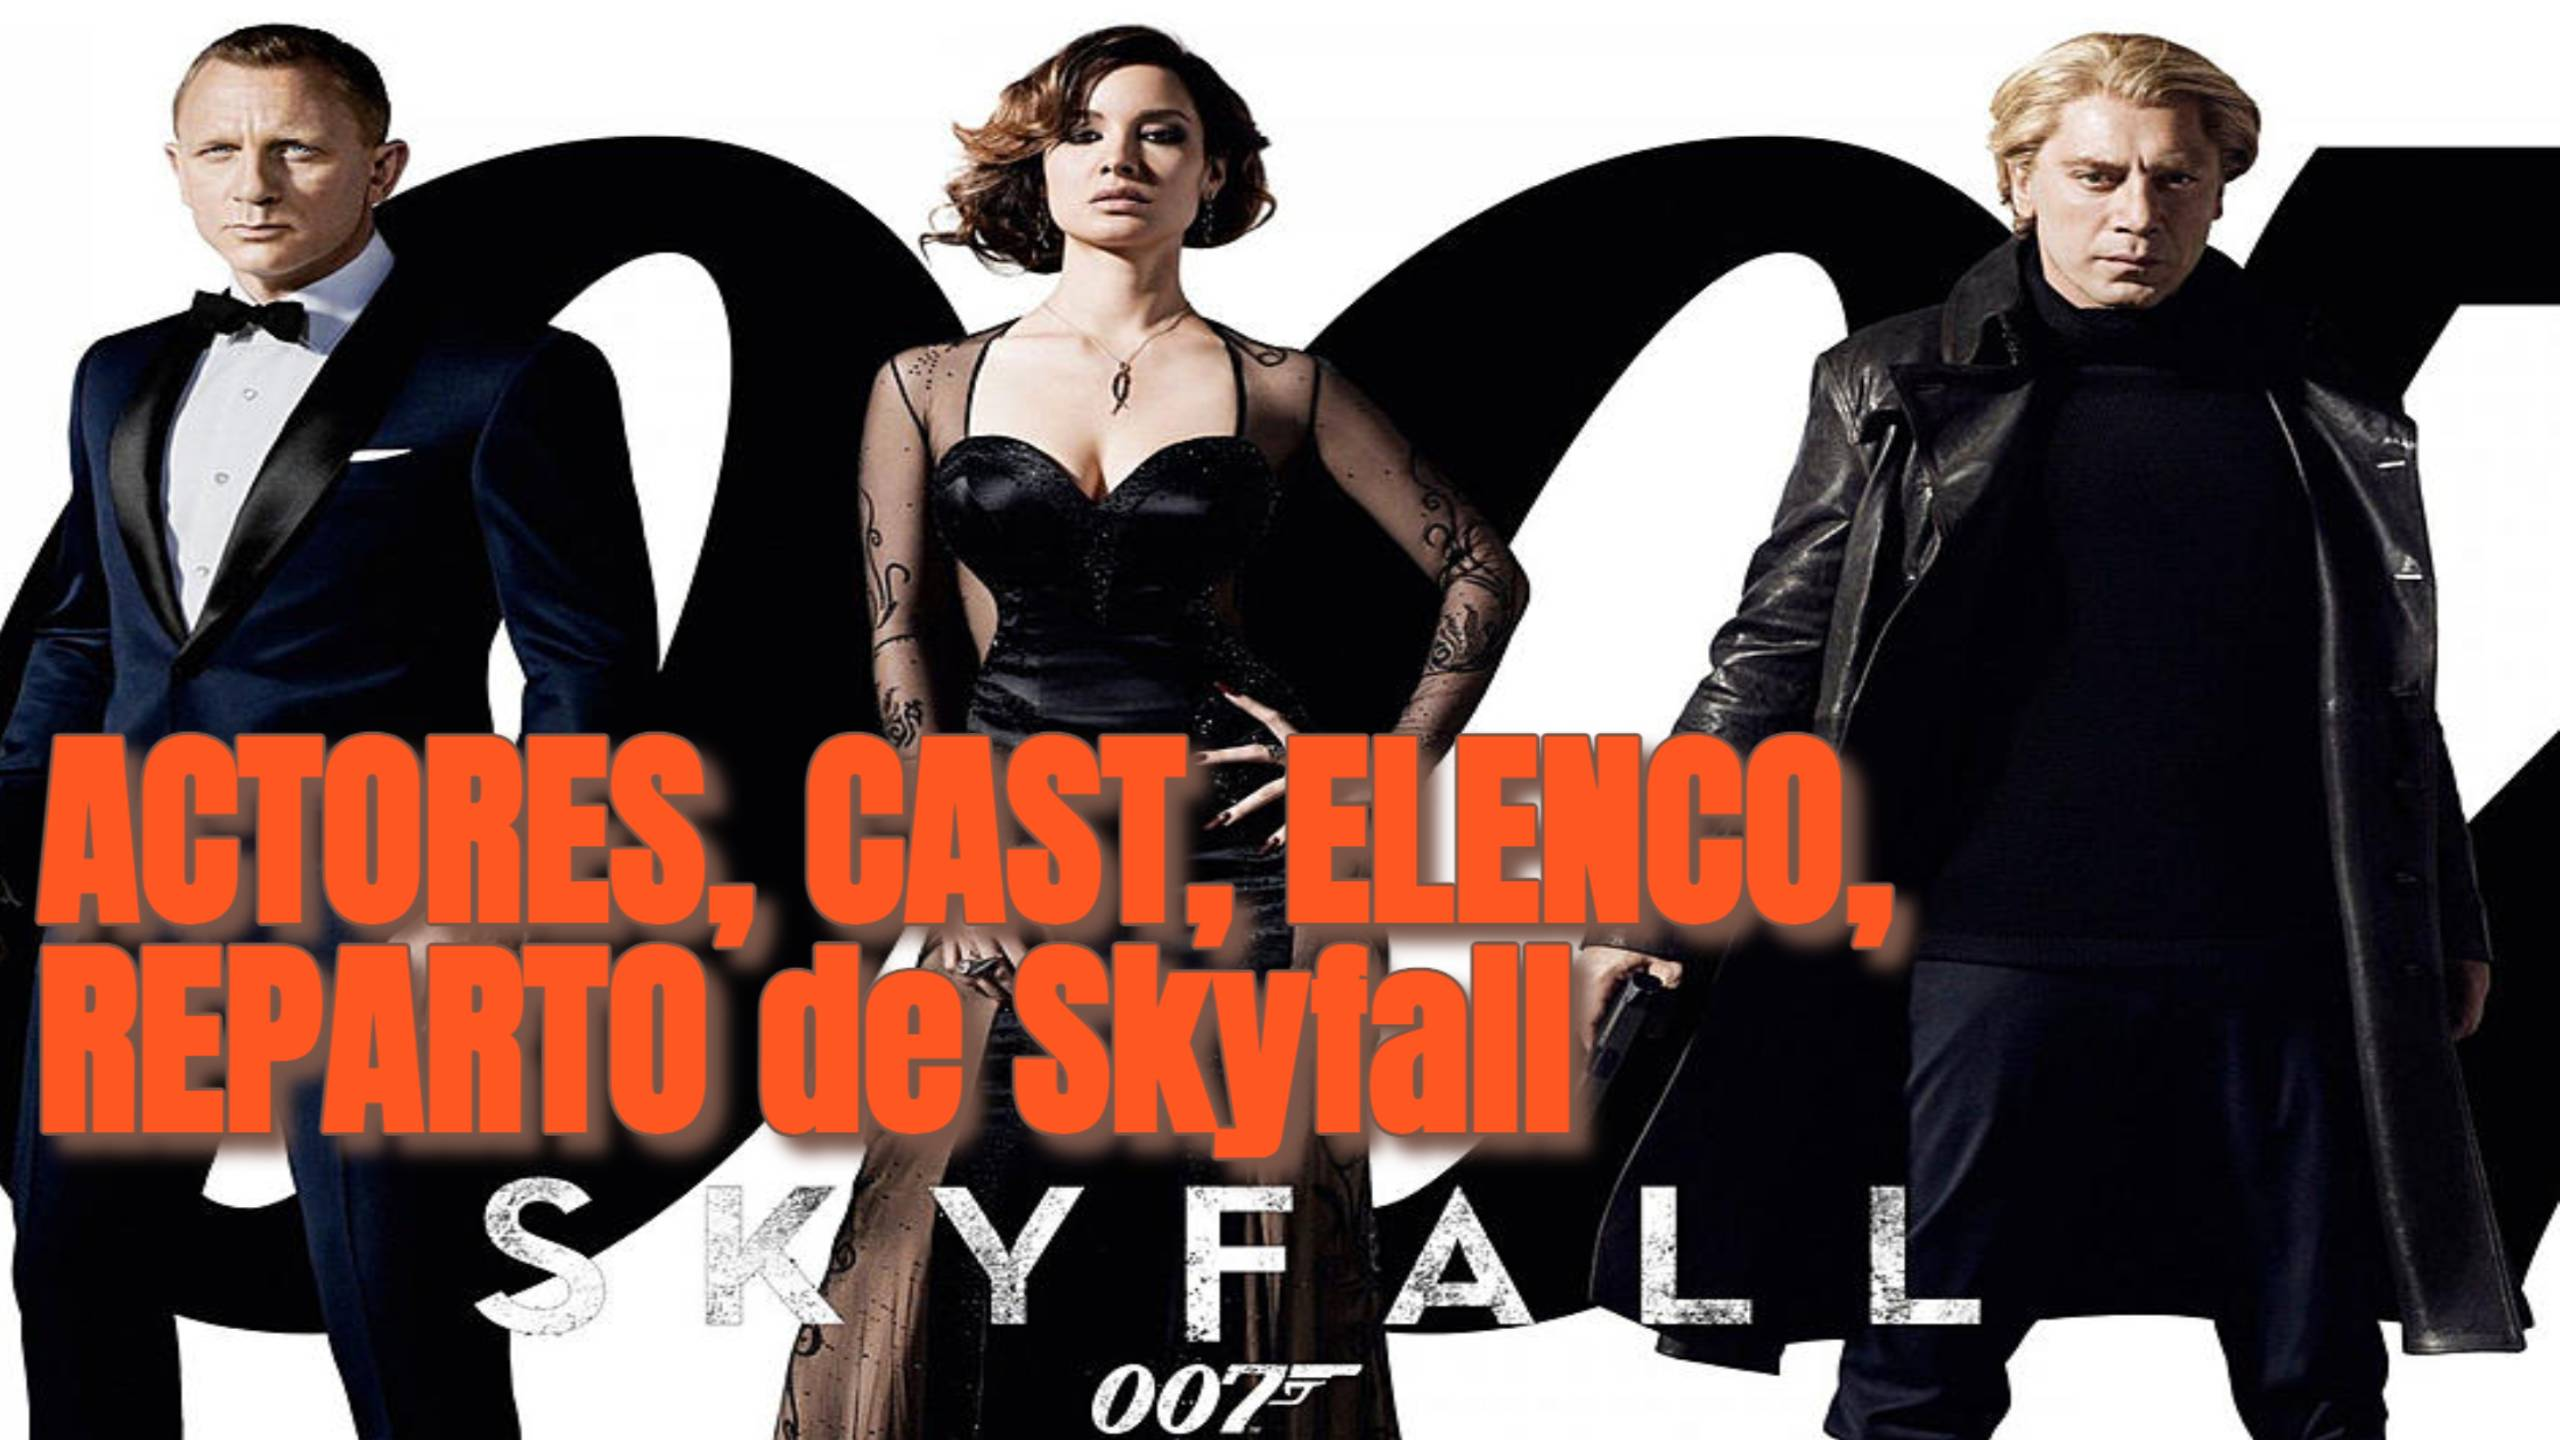 ACTORES, CAST, ELENCO, REPARTO de Skyfall